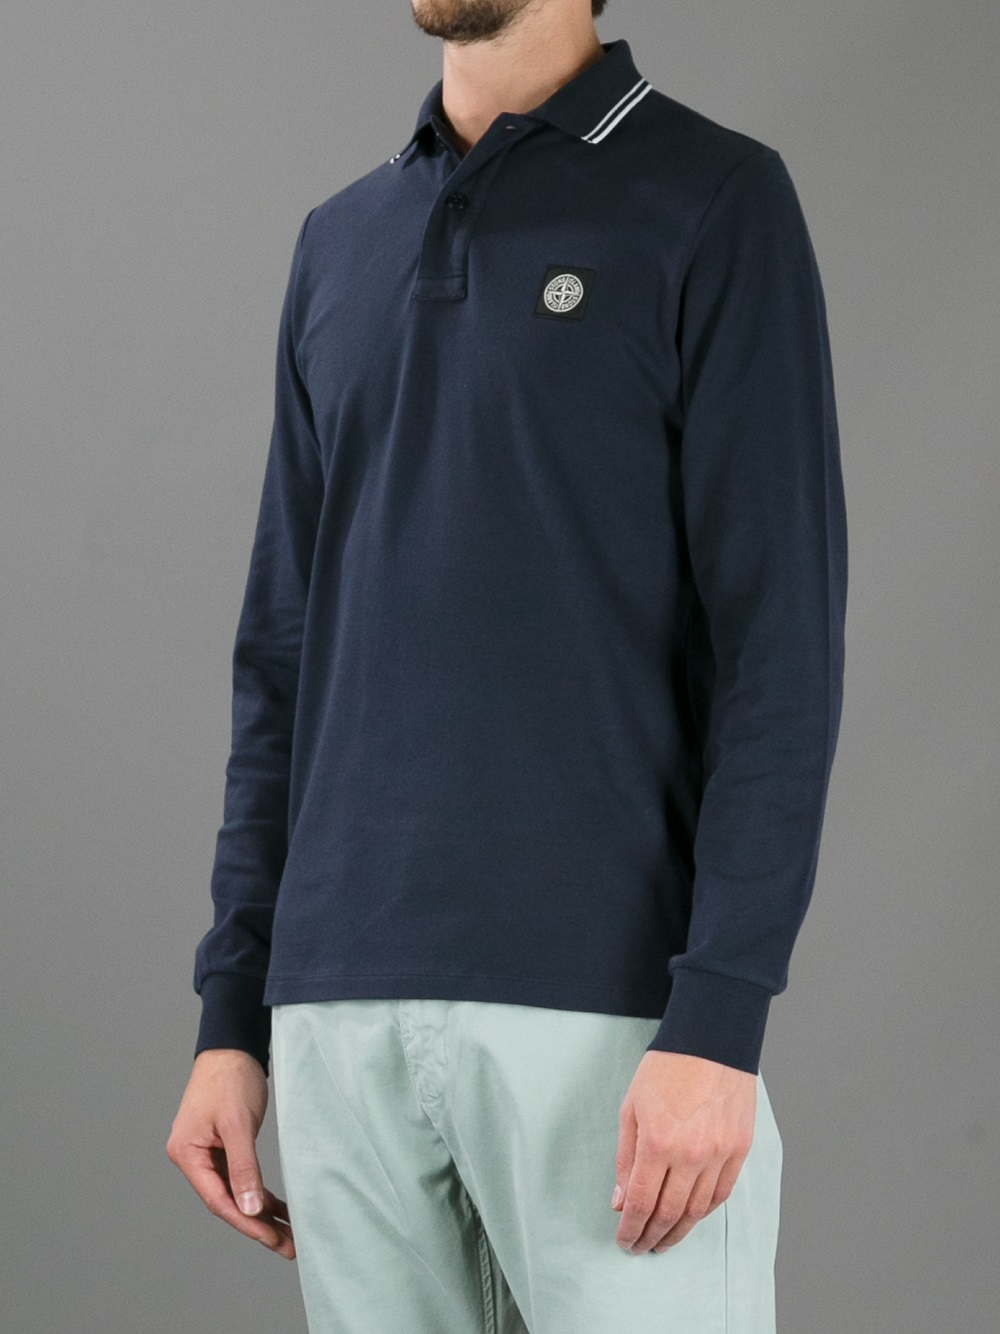 Stone Island Long Sleeve Polo Shirt In Blue For Men Lyst